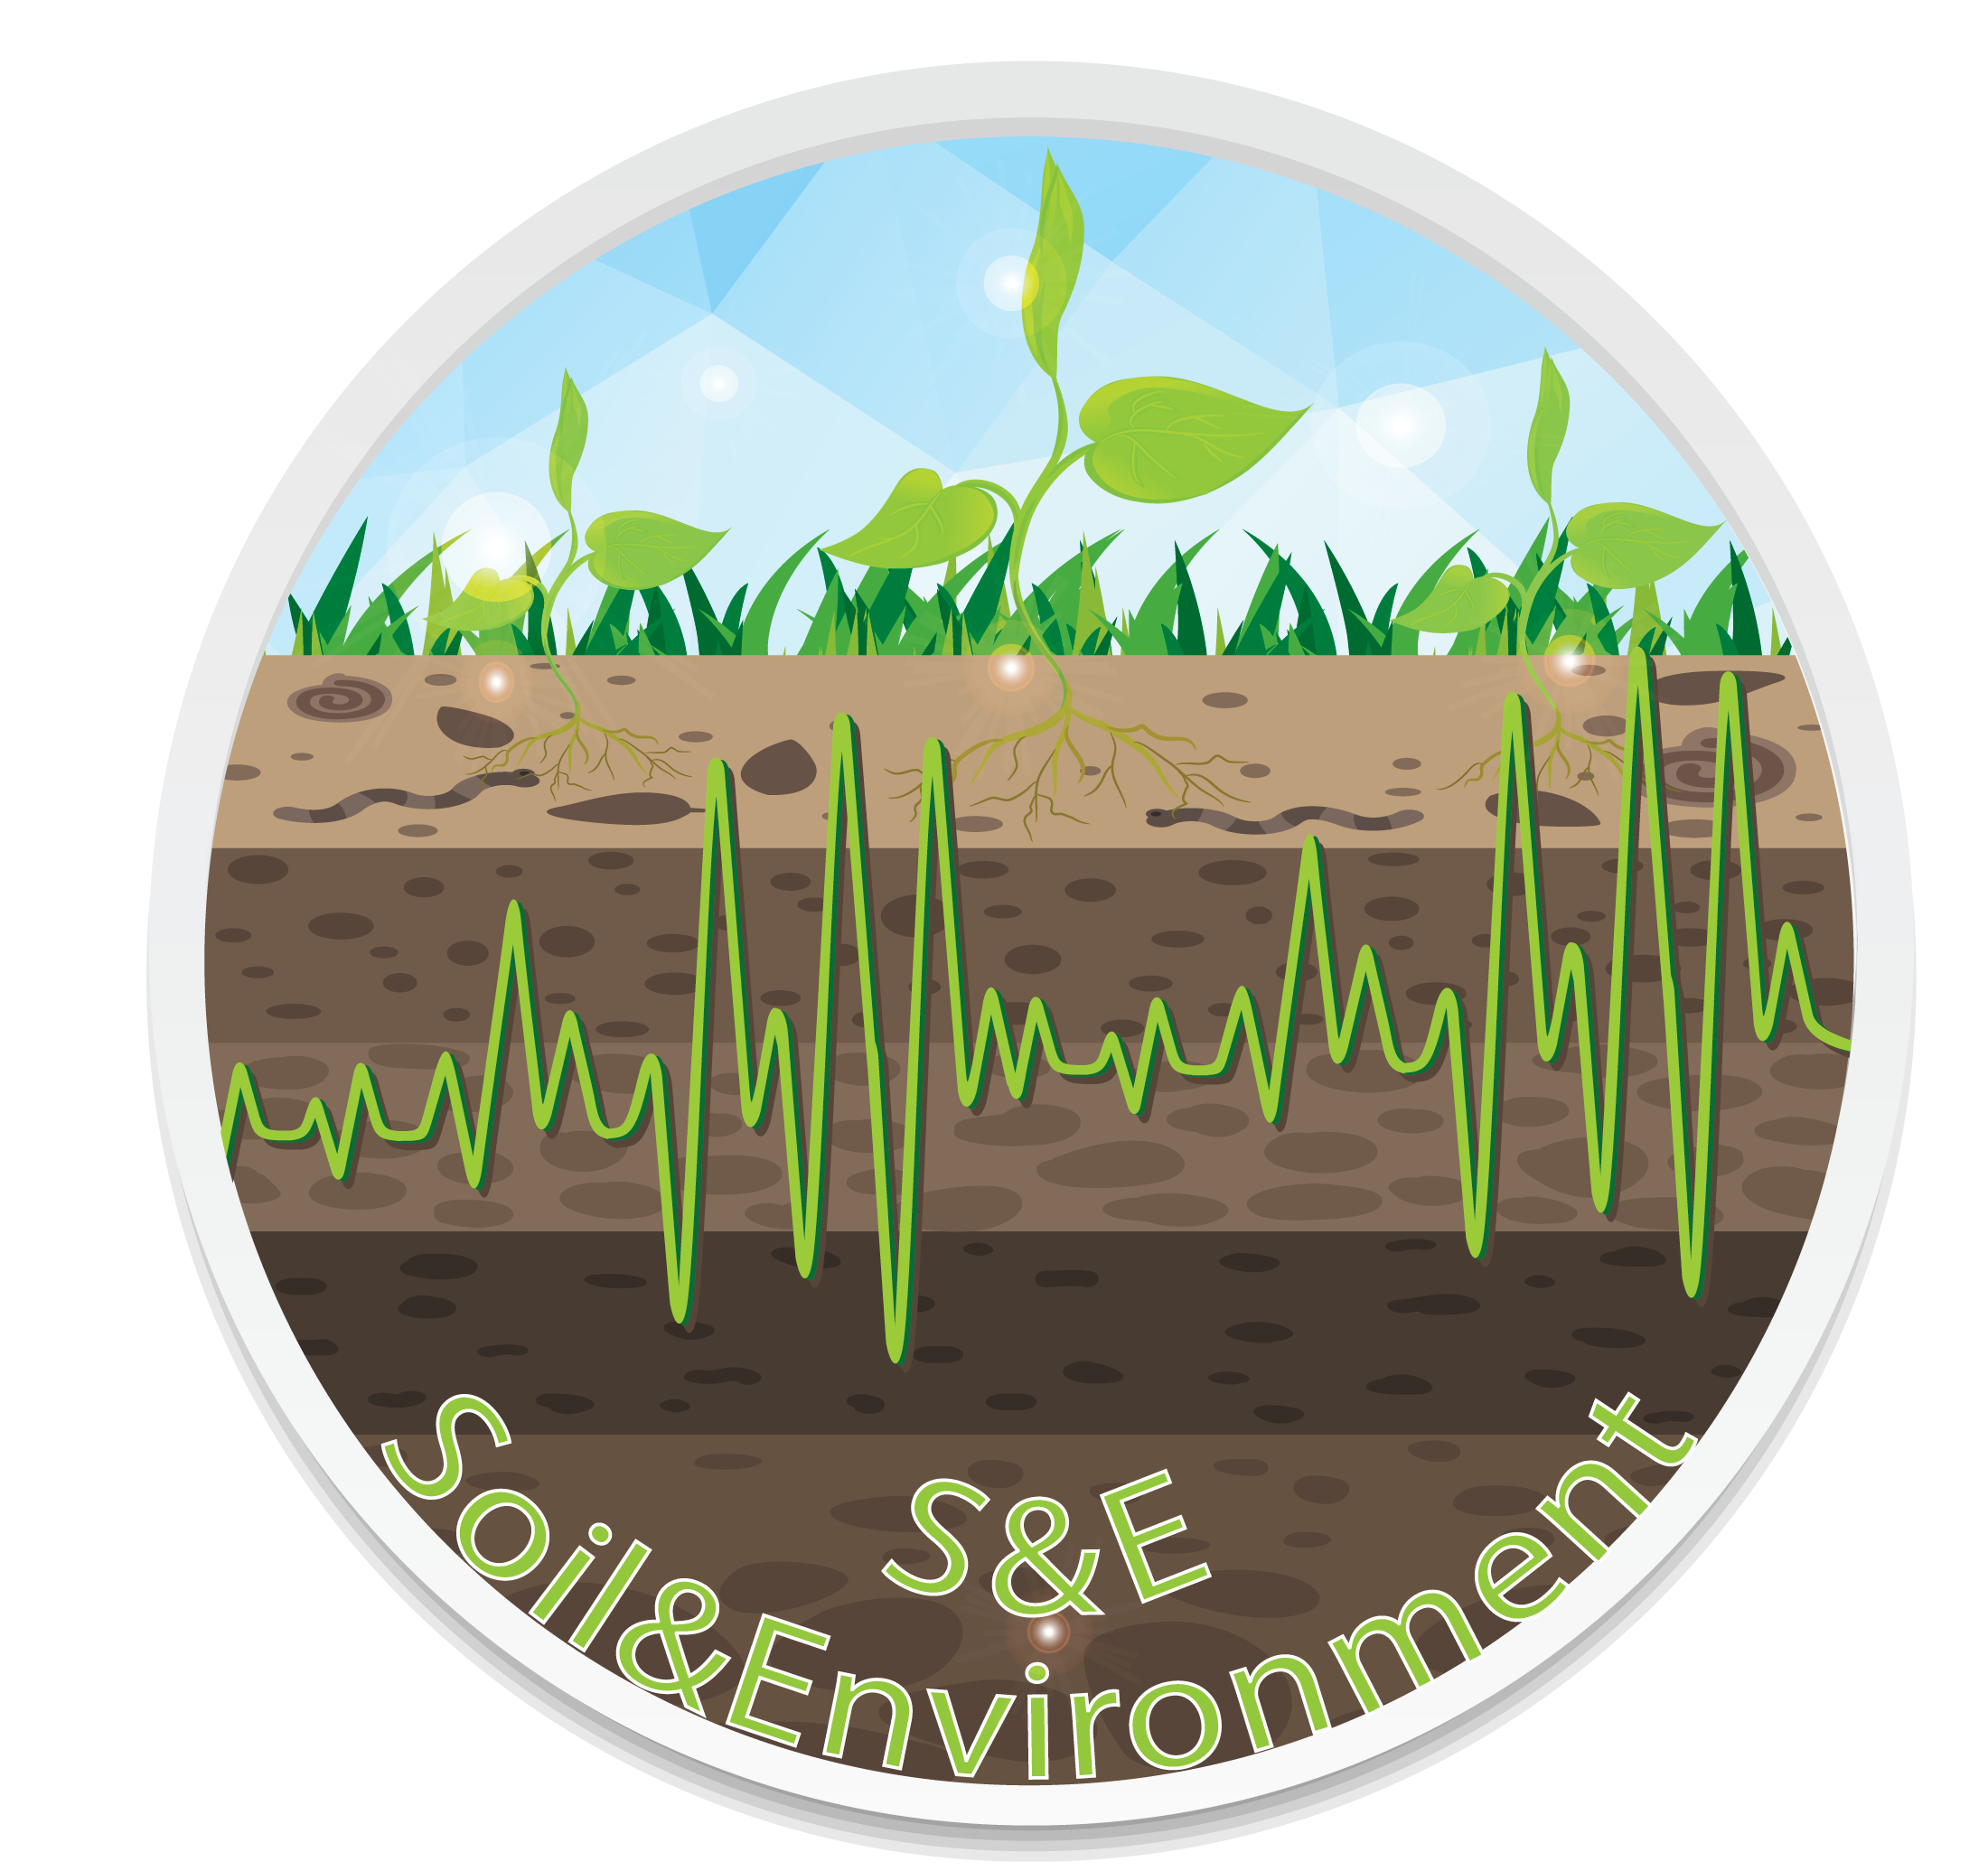 Soil and environment s e skiu for Soil environment